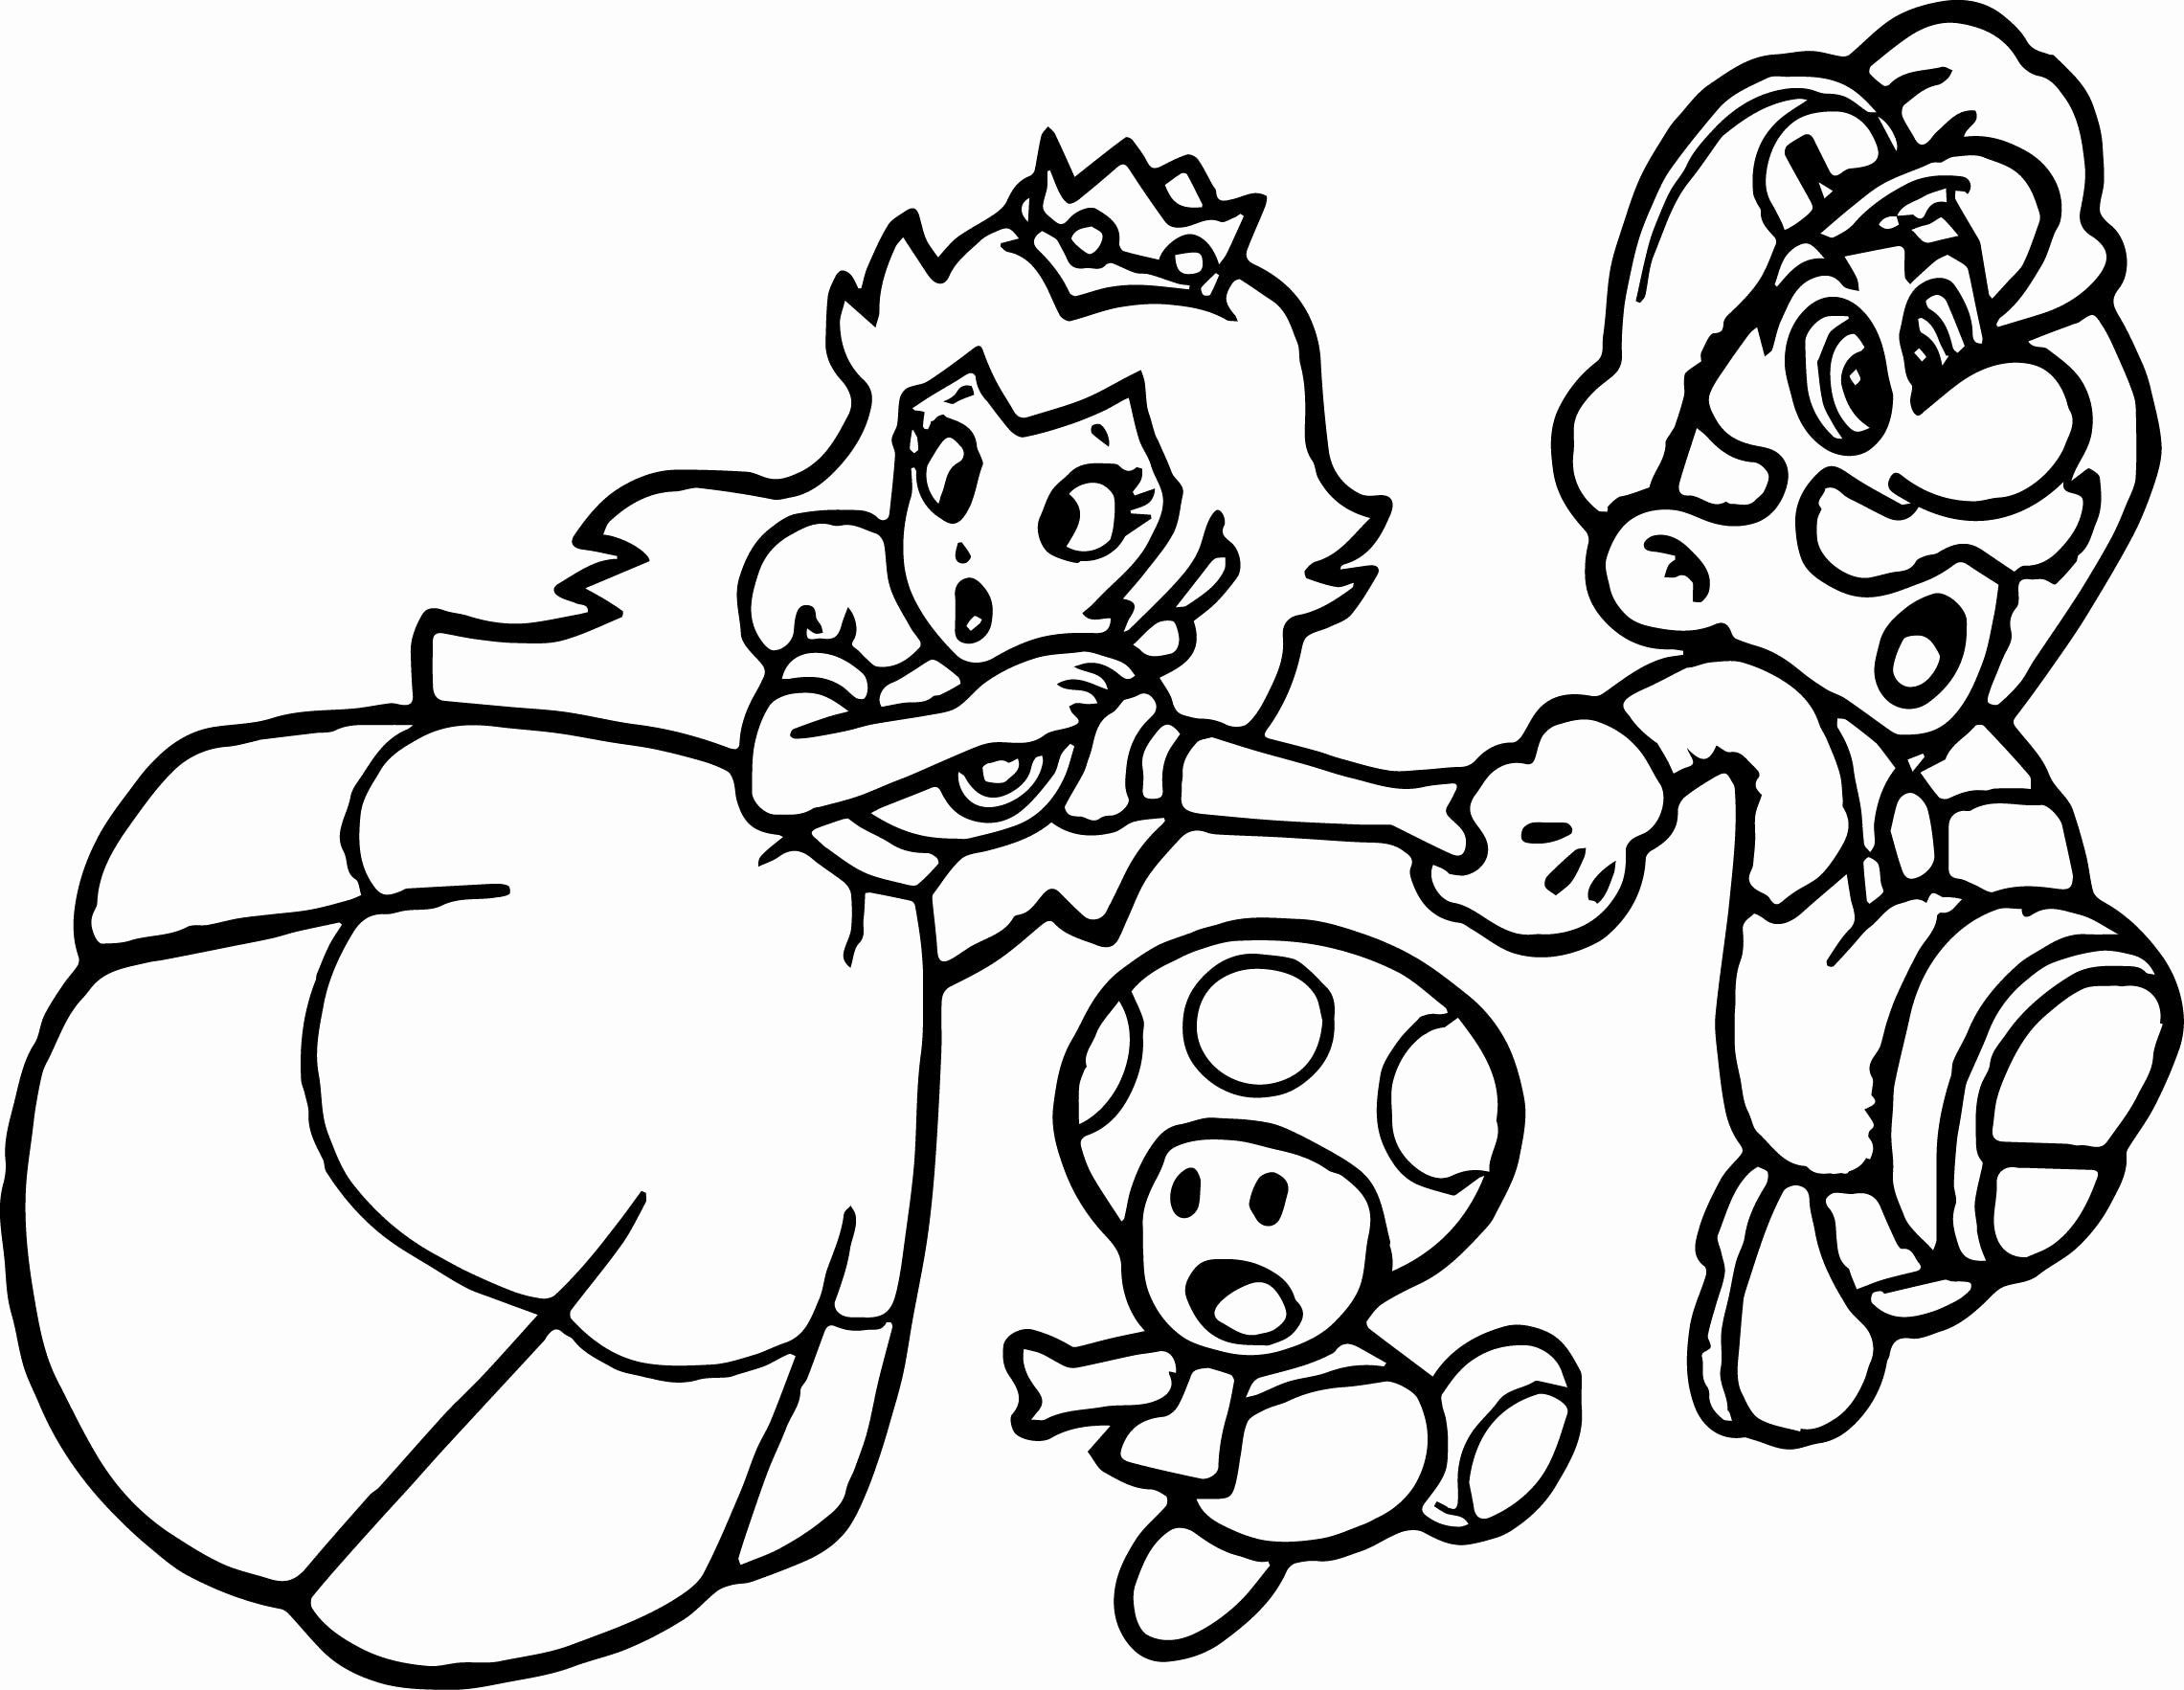 Super Mario Coloring Pages Inspirational Super Mario